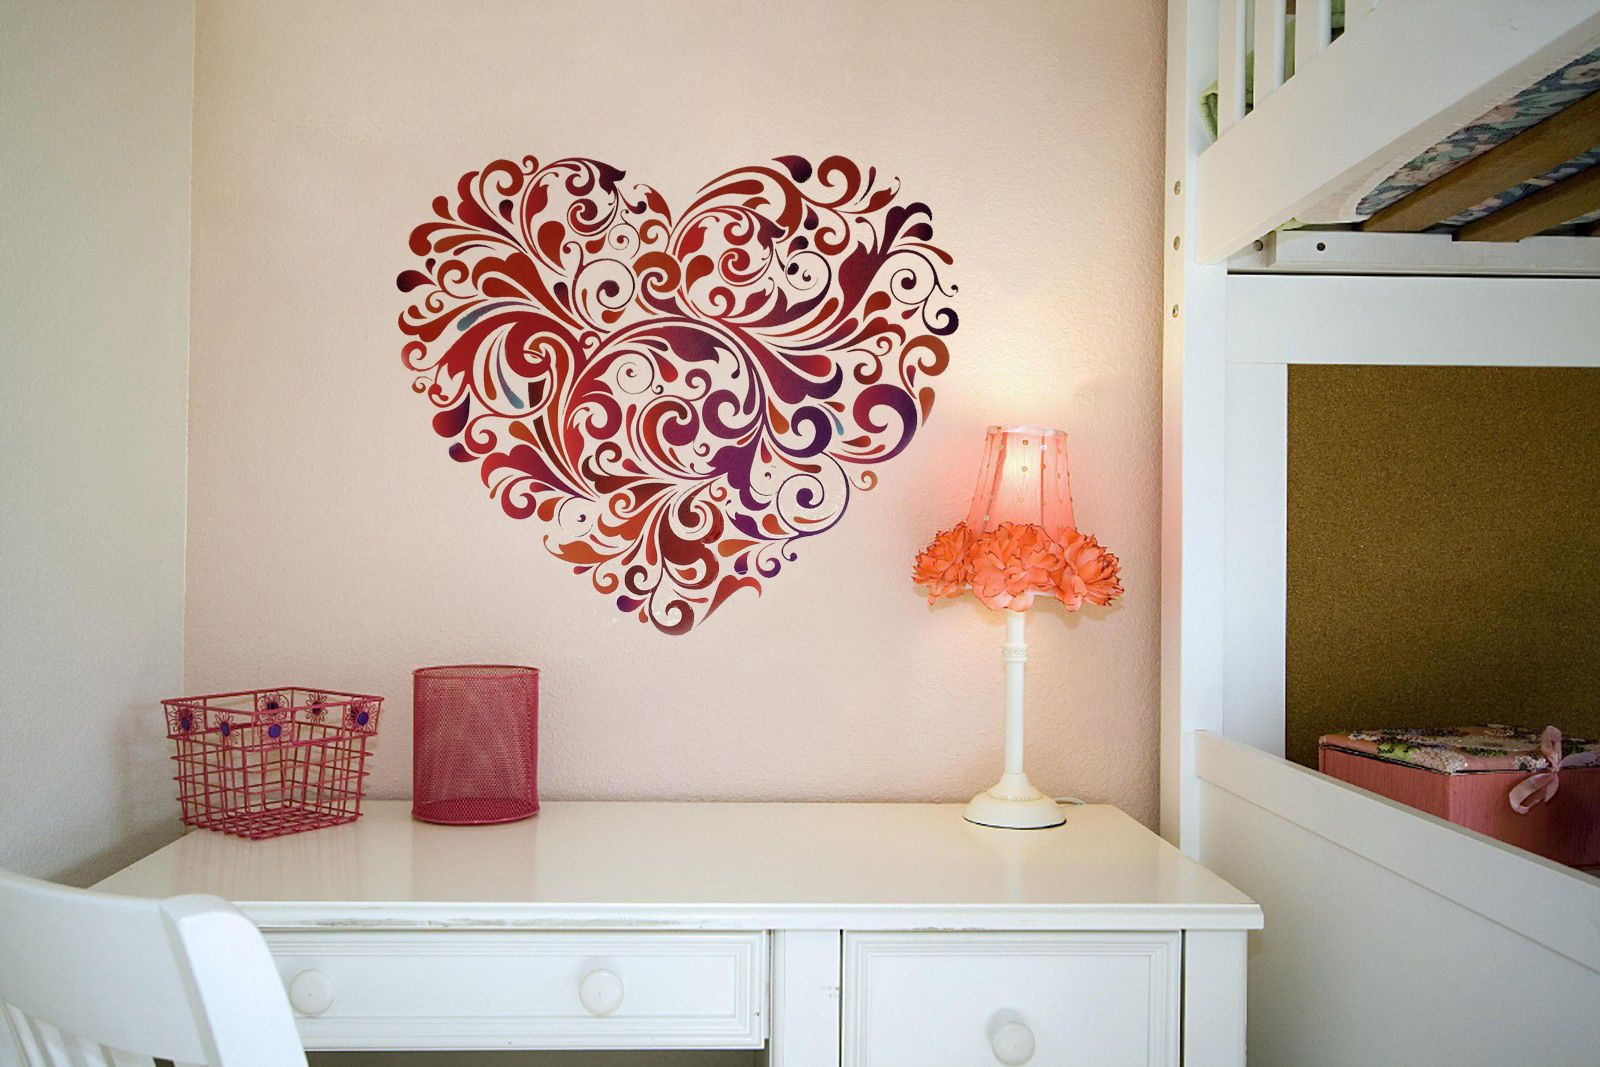 Make Your Home Beautiful with Unique Wall